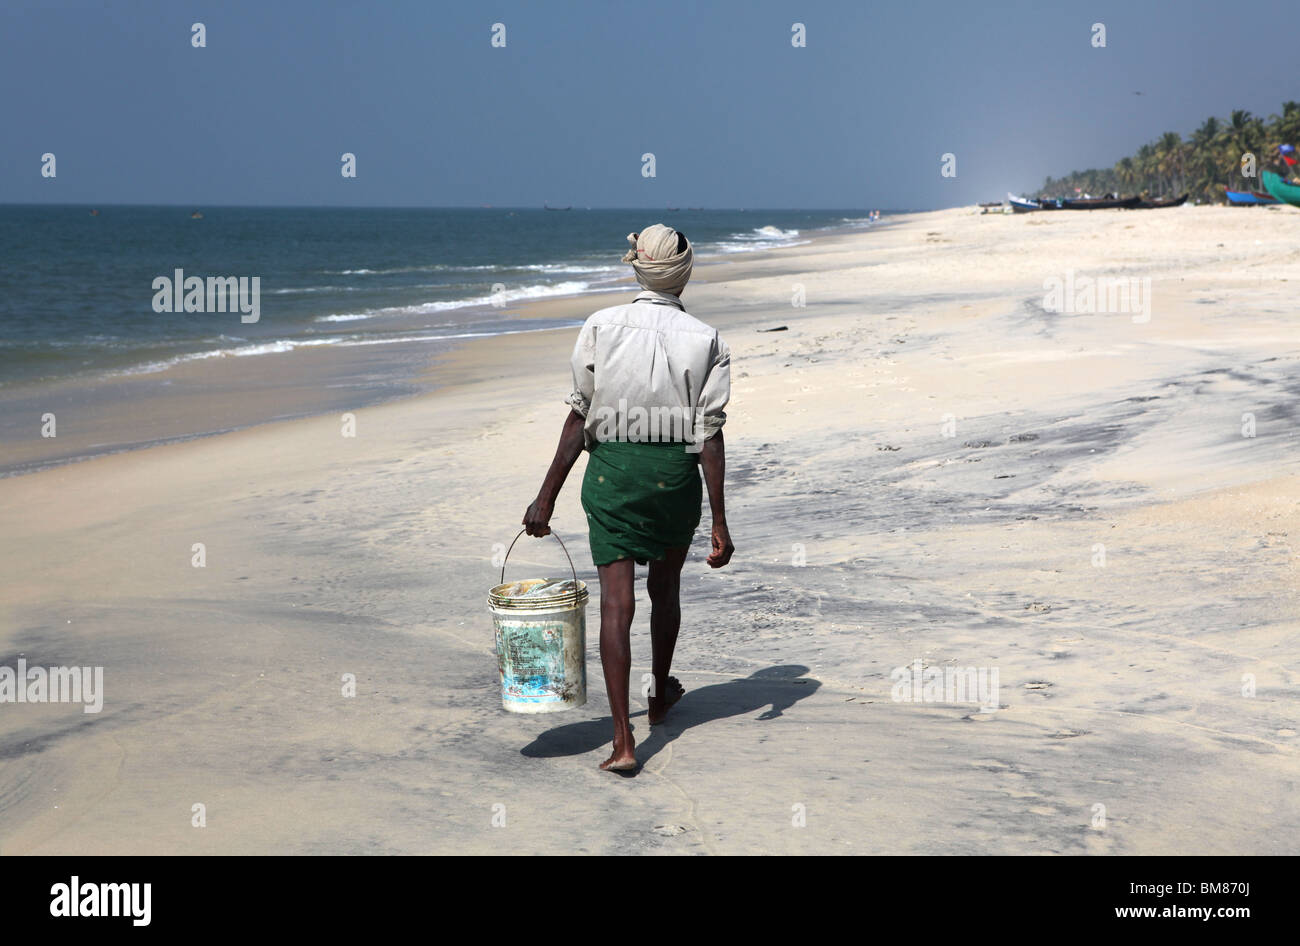 Fishermen working on Marari Beach or Secret Beach near the town of Alleppey in Kerala, India. Stock Photo